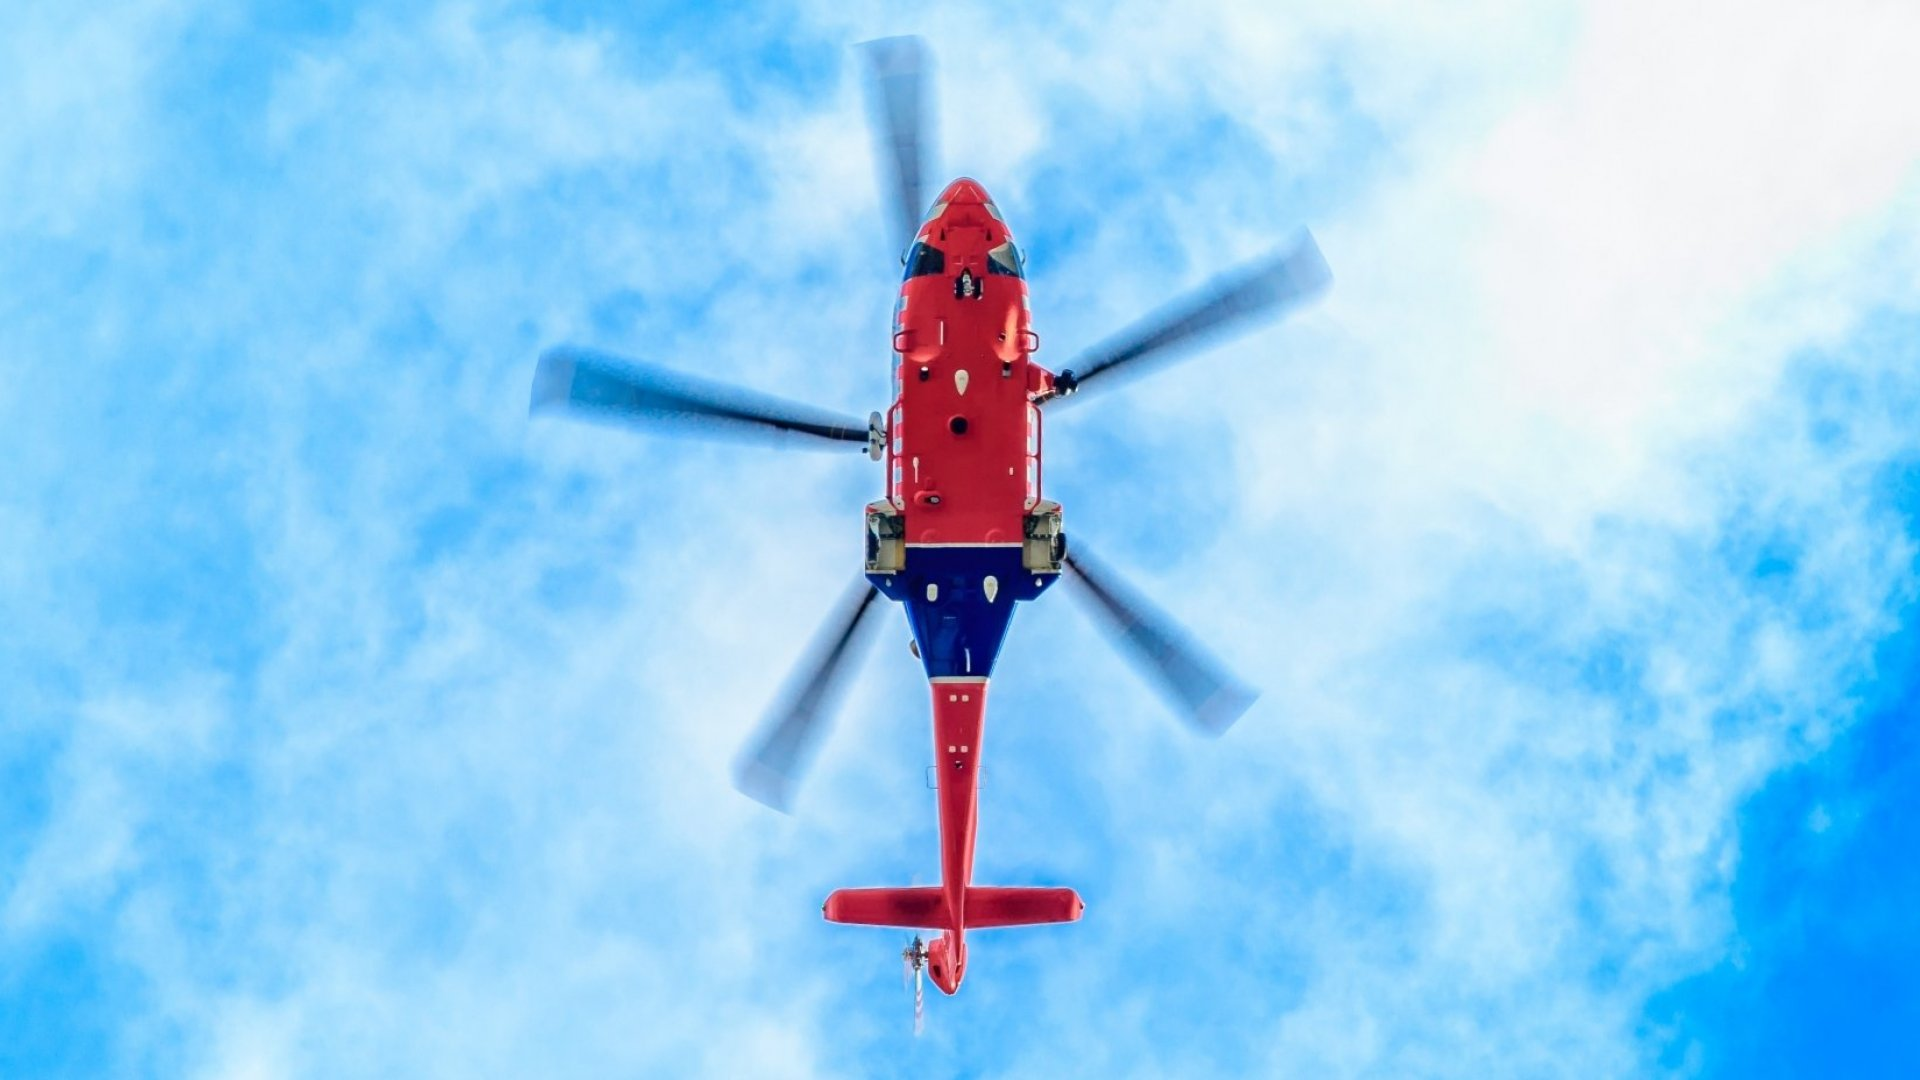 Forget Delegating. Here's How to Be a Great Helicopter Boss